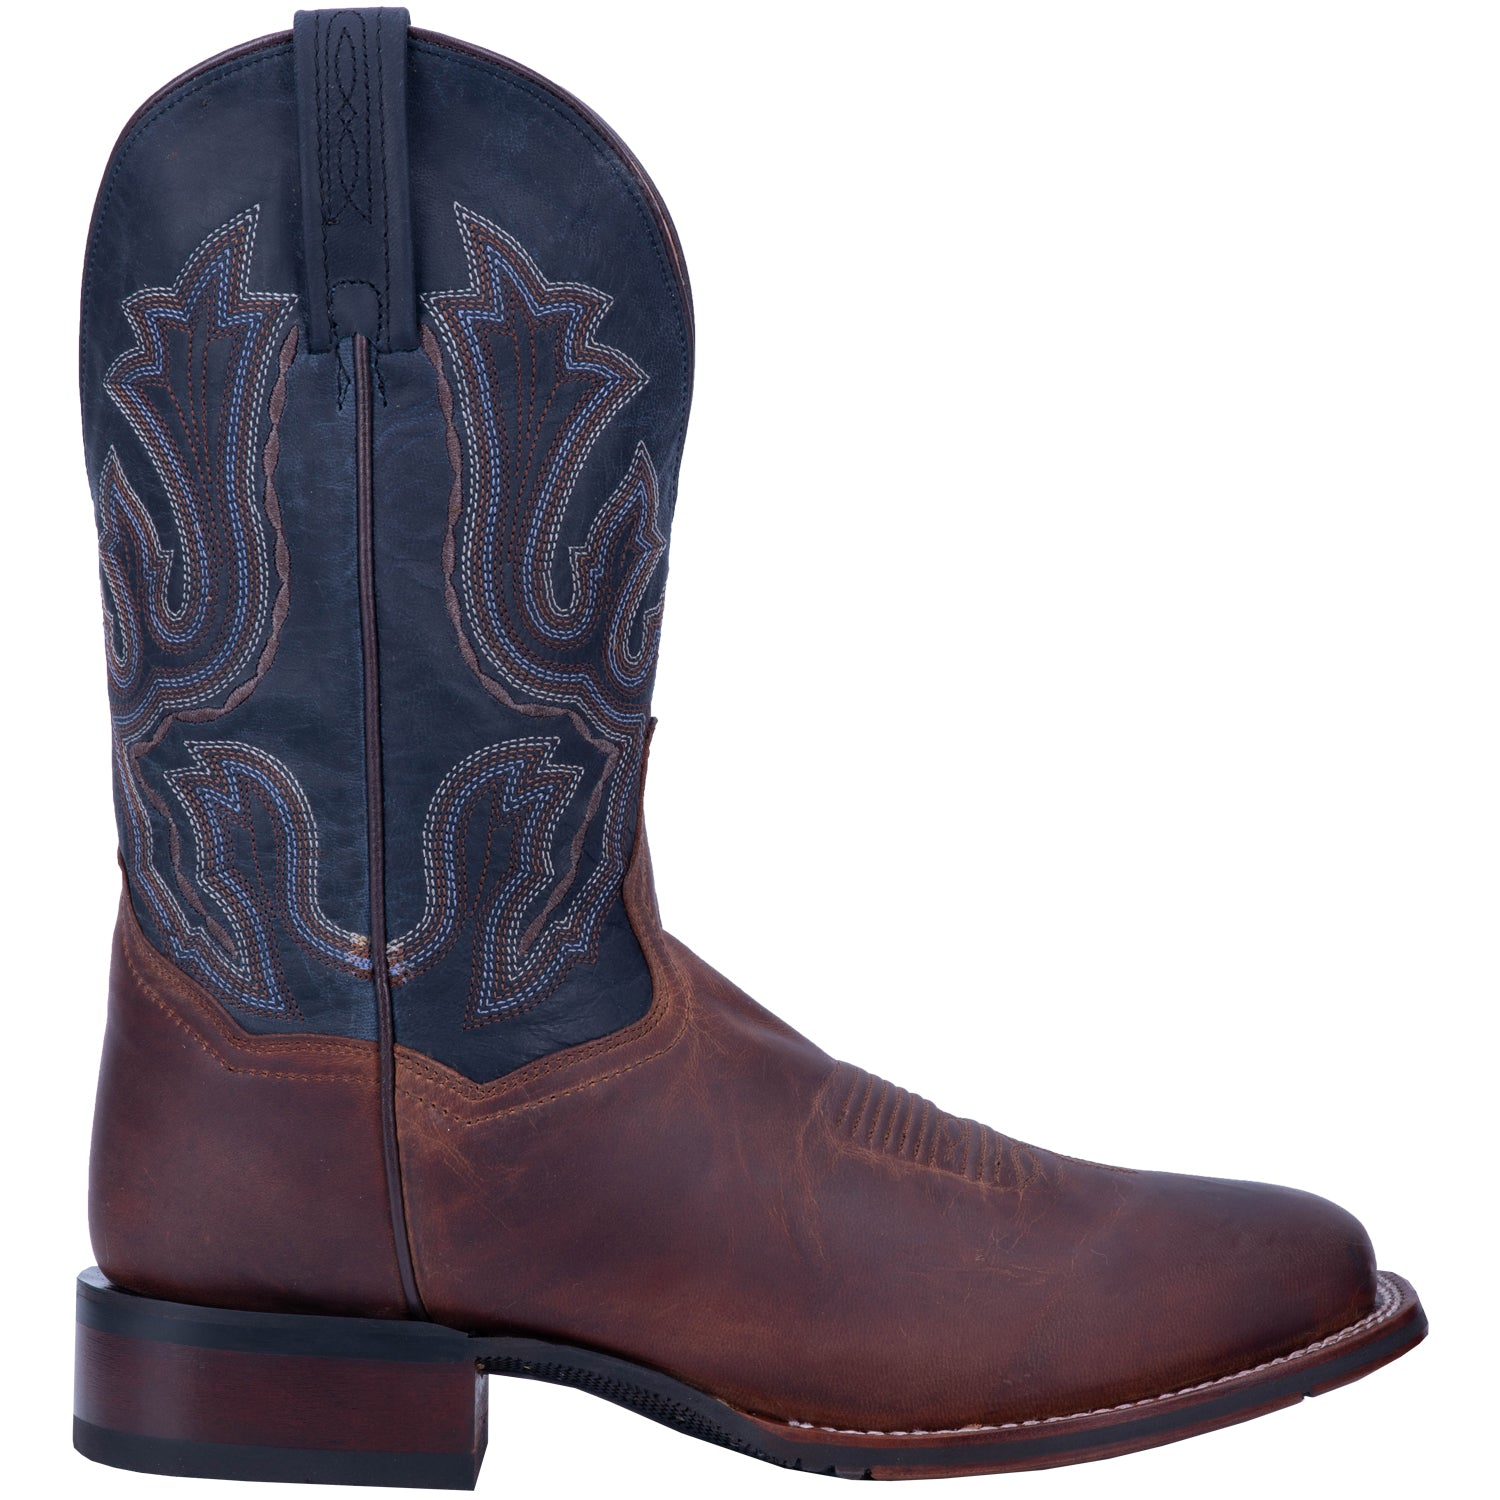 WINSLOW LEATHER BOOT 13289286205482